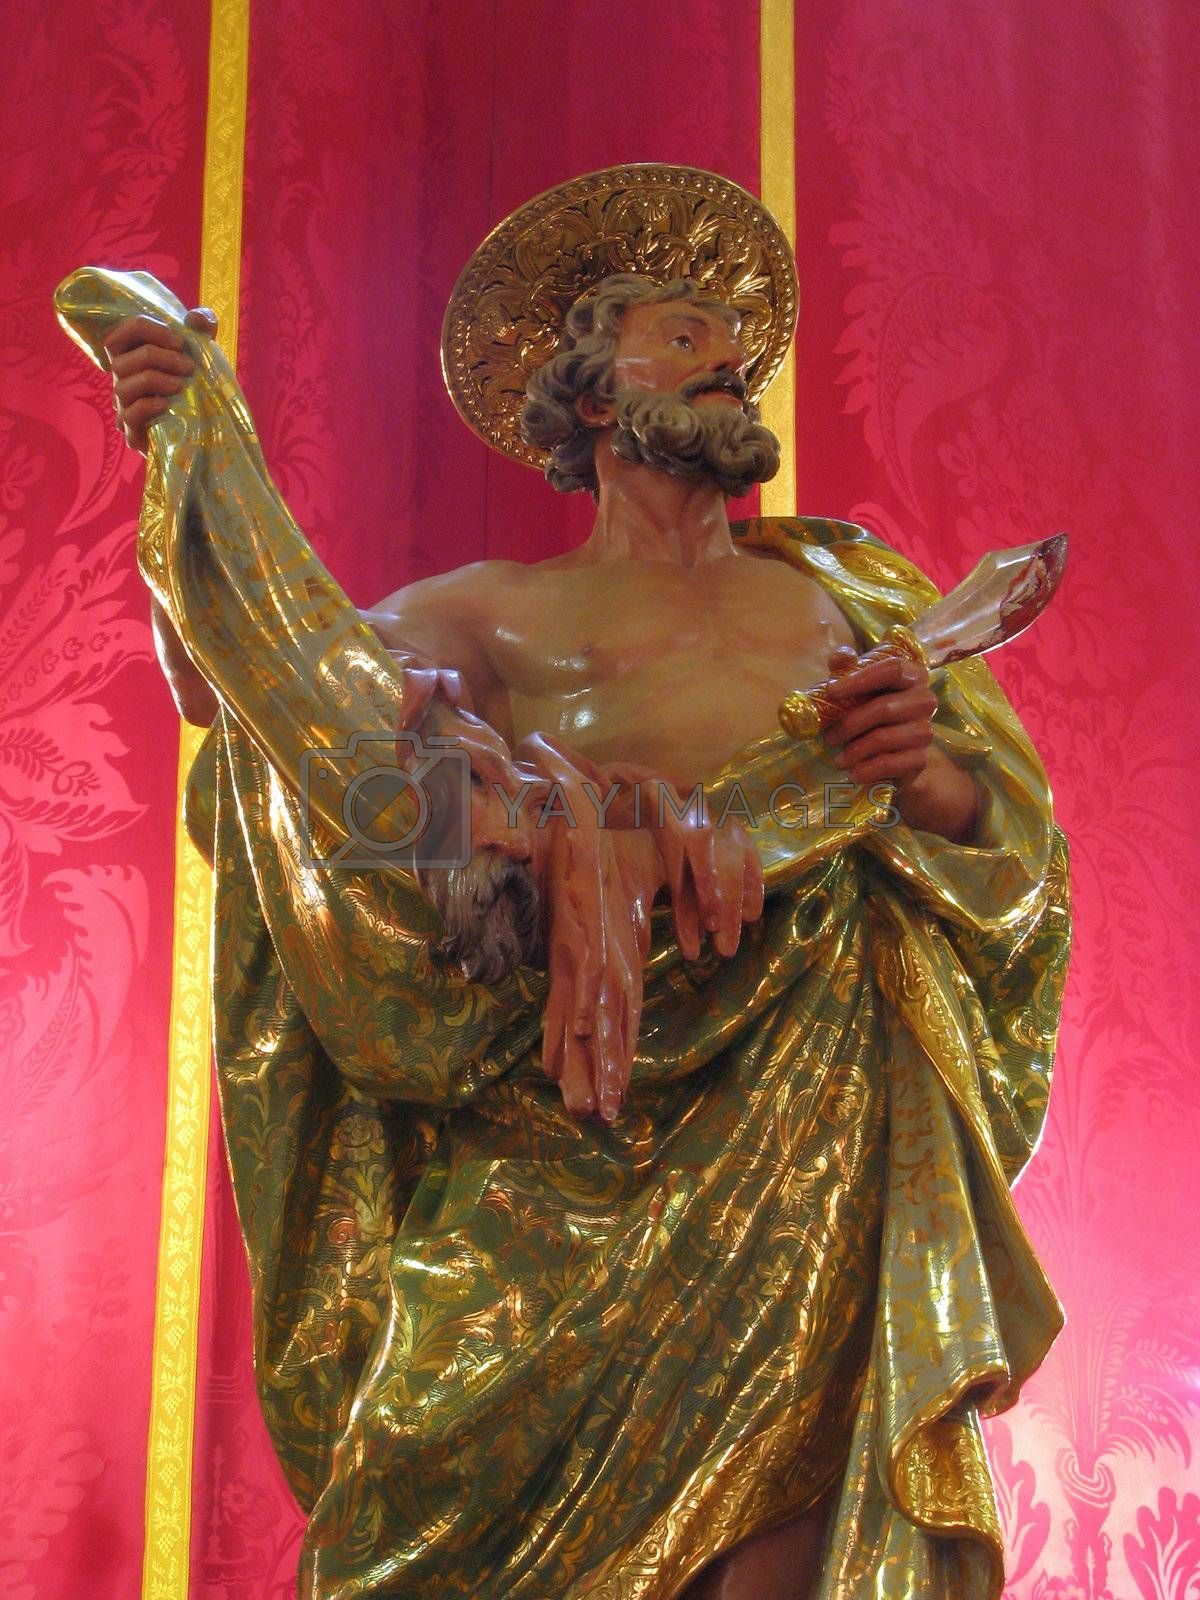 A detail of the statue of Saint Bartholomew in Gharghur, Malta.